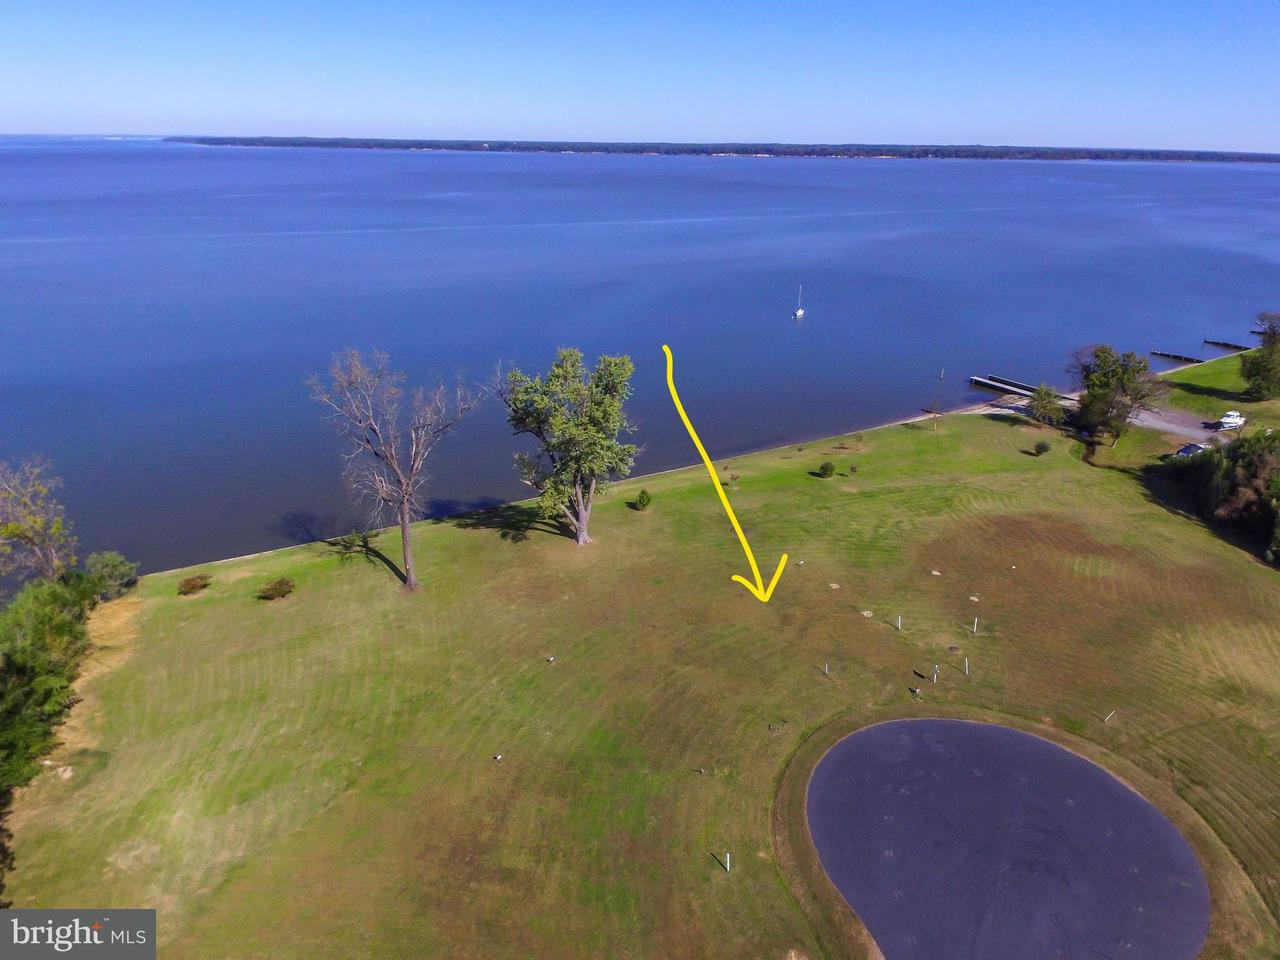 Land for Sale at 92 Marineview Road 92 Marineview Road King George, Virginia 22485 United States